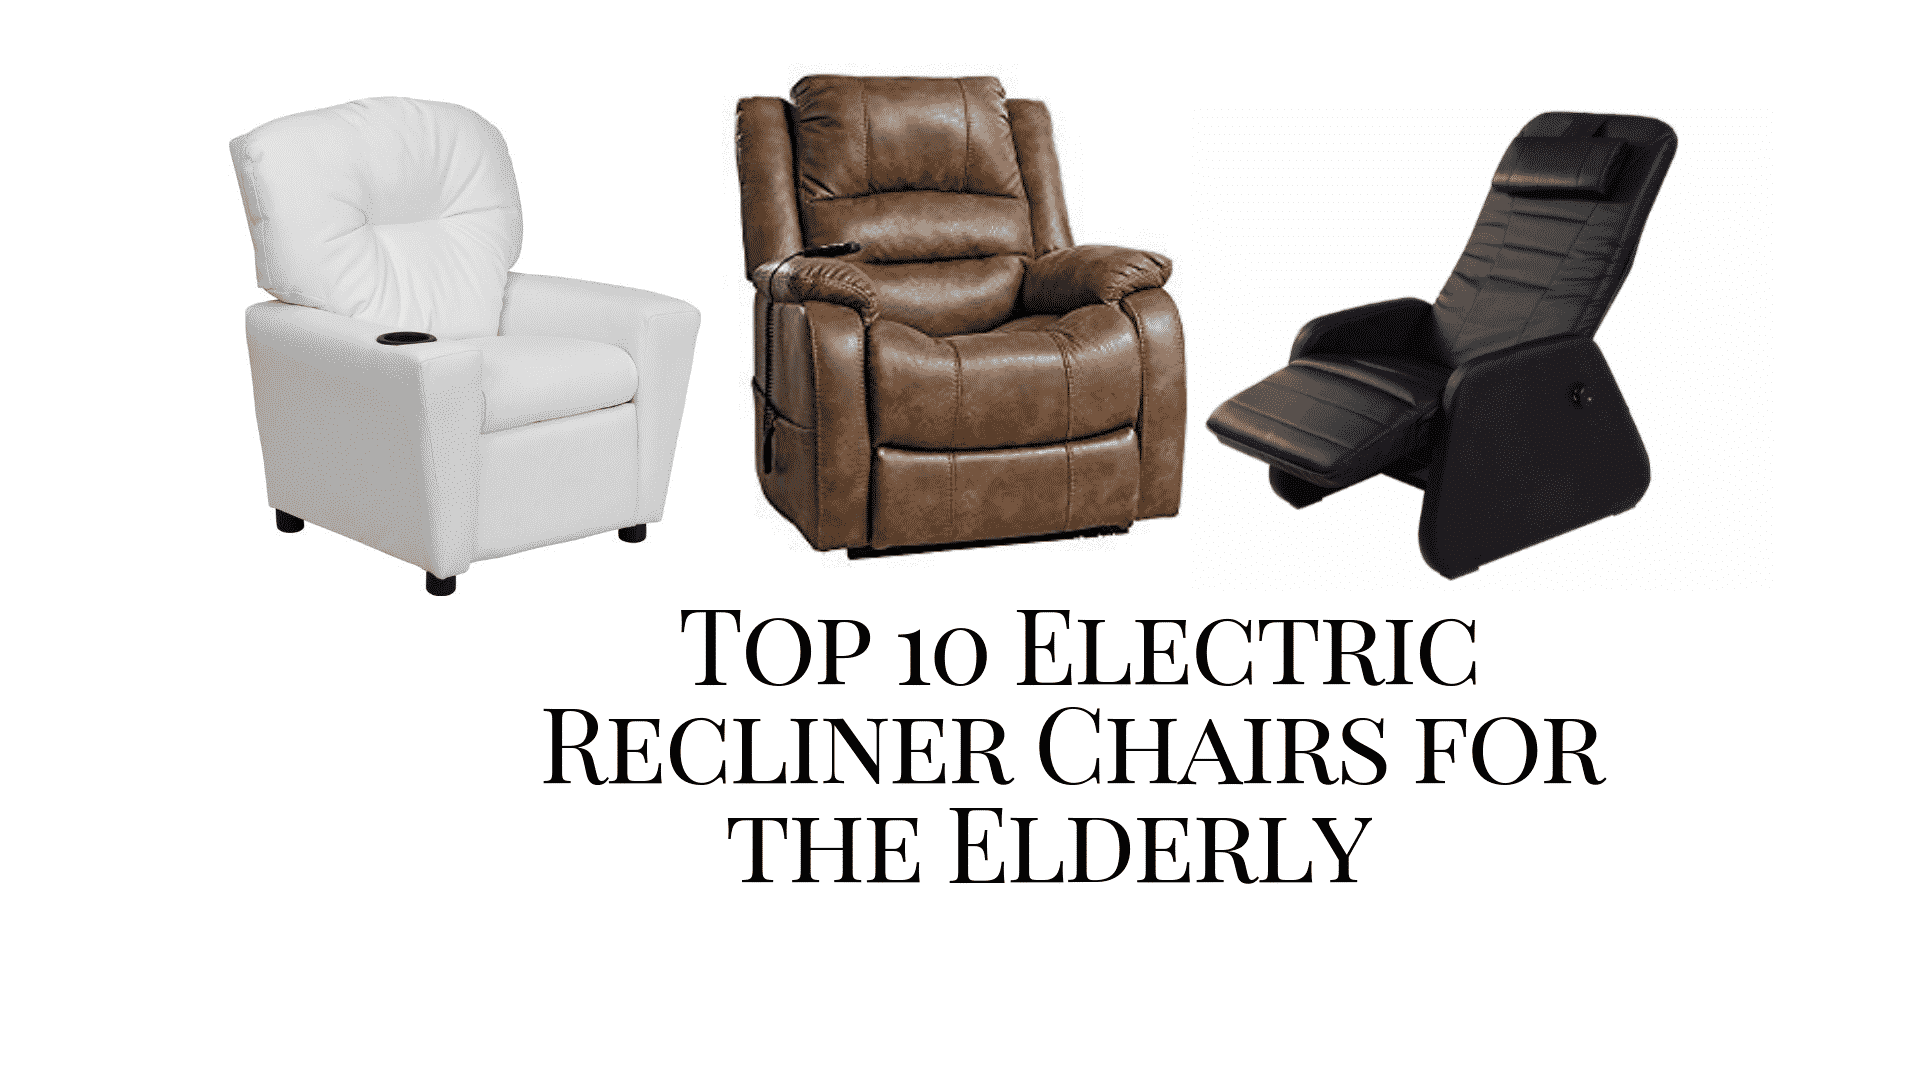 Astounding Top 10 Electric Recliner Chairs For The Elderly 2019 Beatyapartments Chair Design Images Beatyapartmentscom